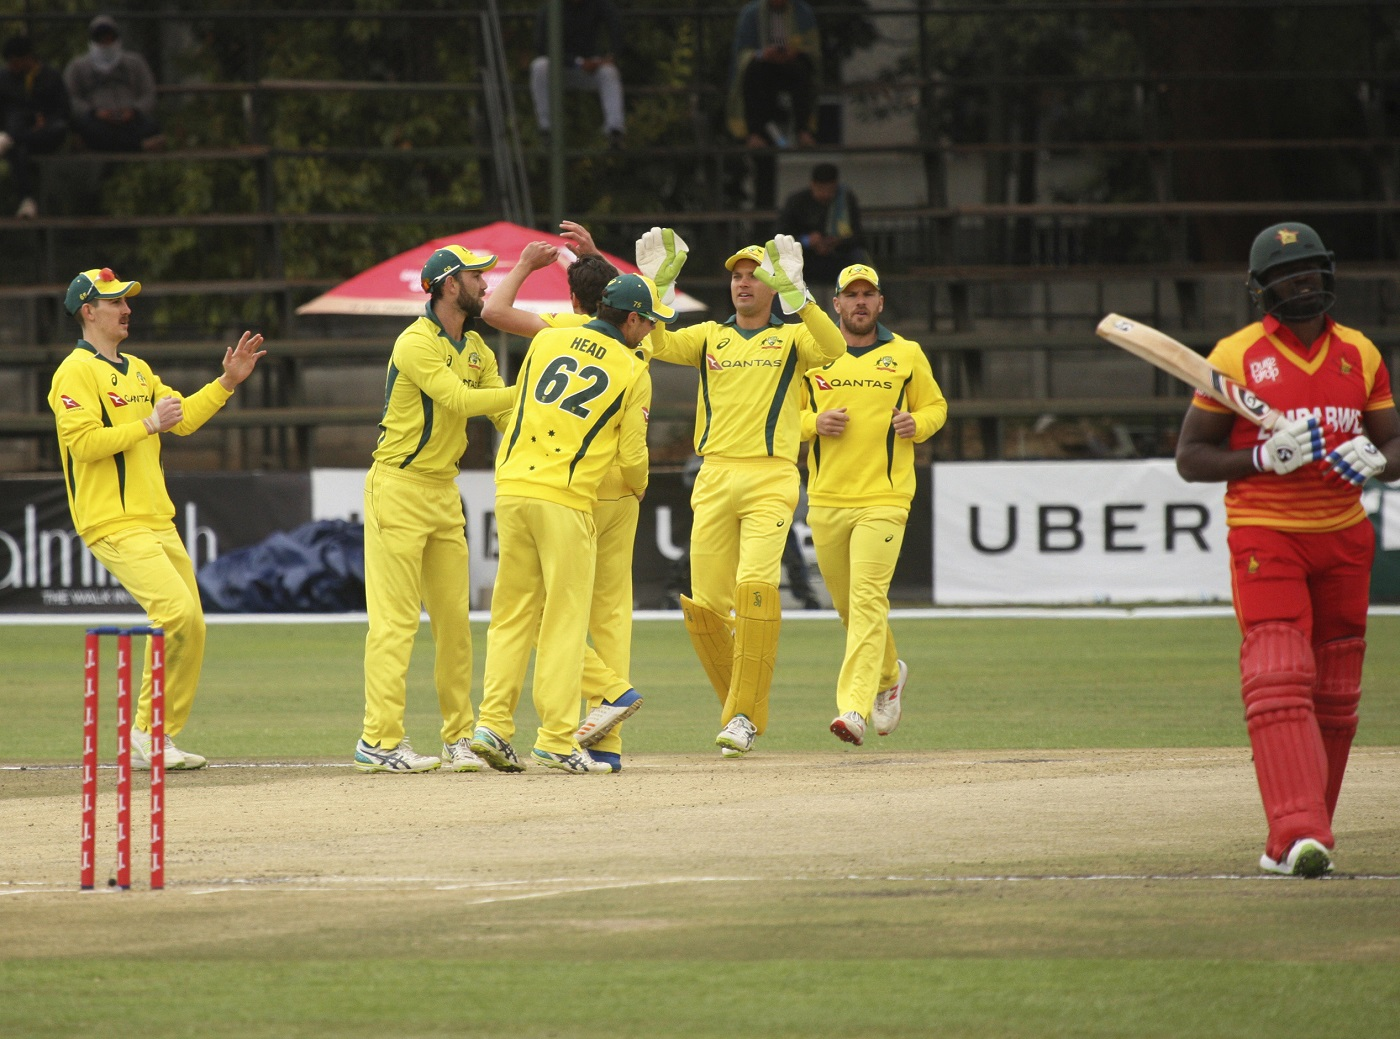 Tri-series 2018: Australia Prevails over Zimbabwe to Seal Finale Berth with Pakistan 1